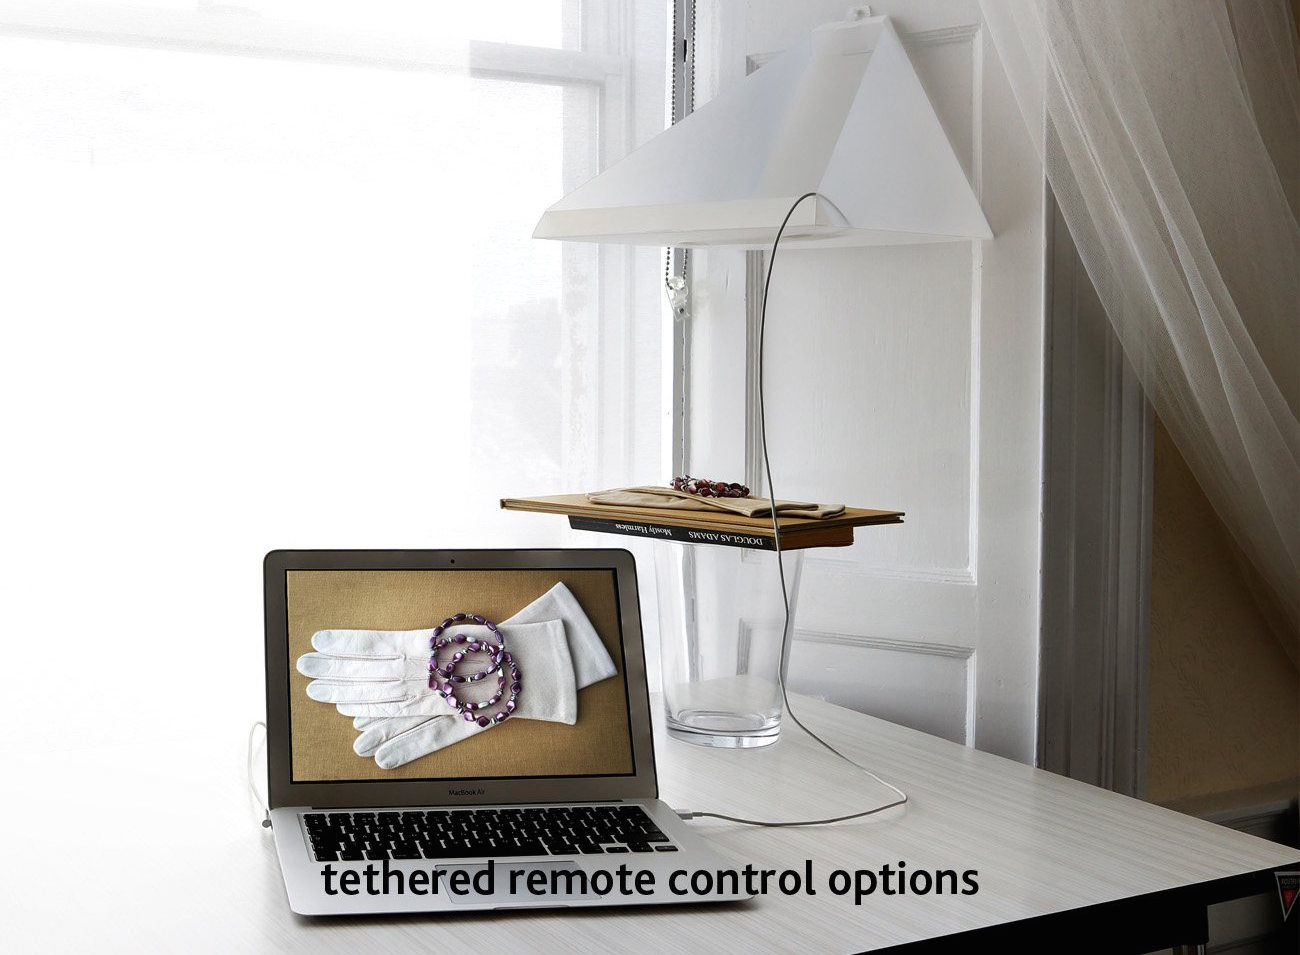 Rostrum Camera Stand for Remote Overhead Photos and Video